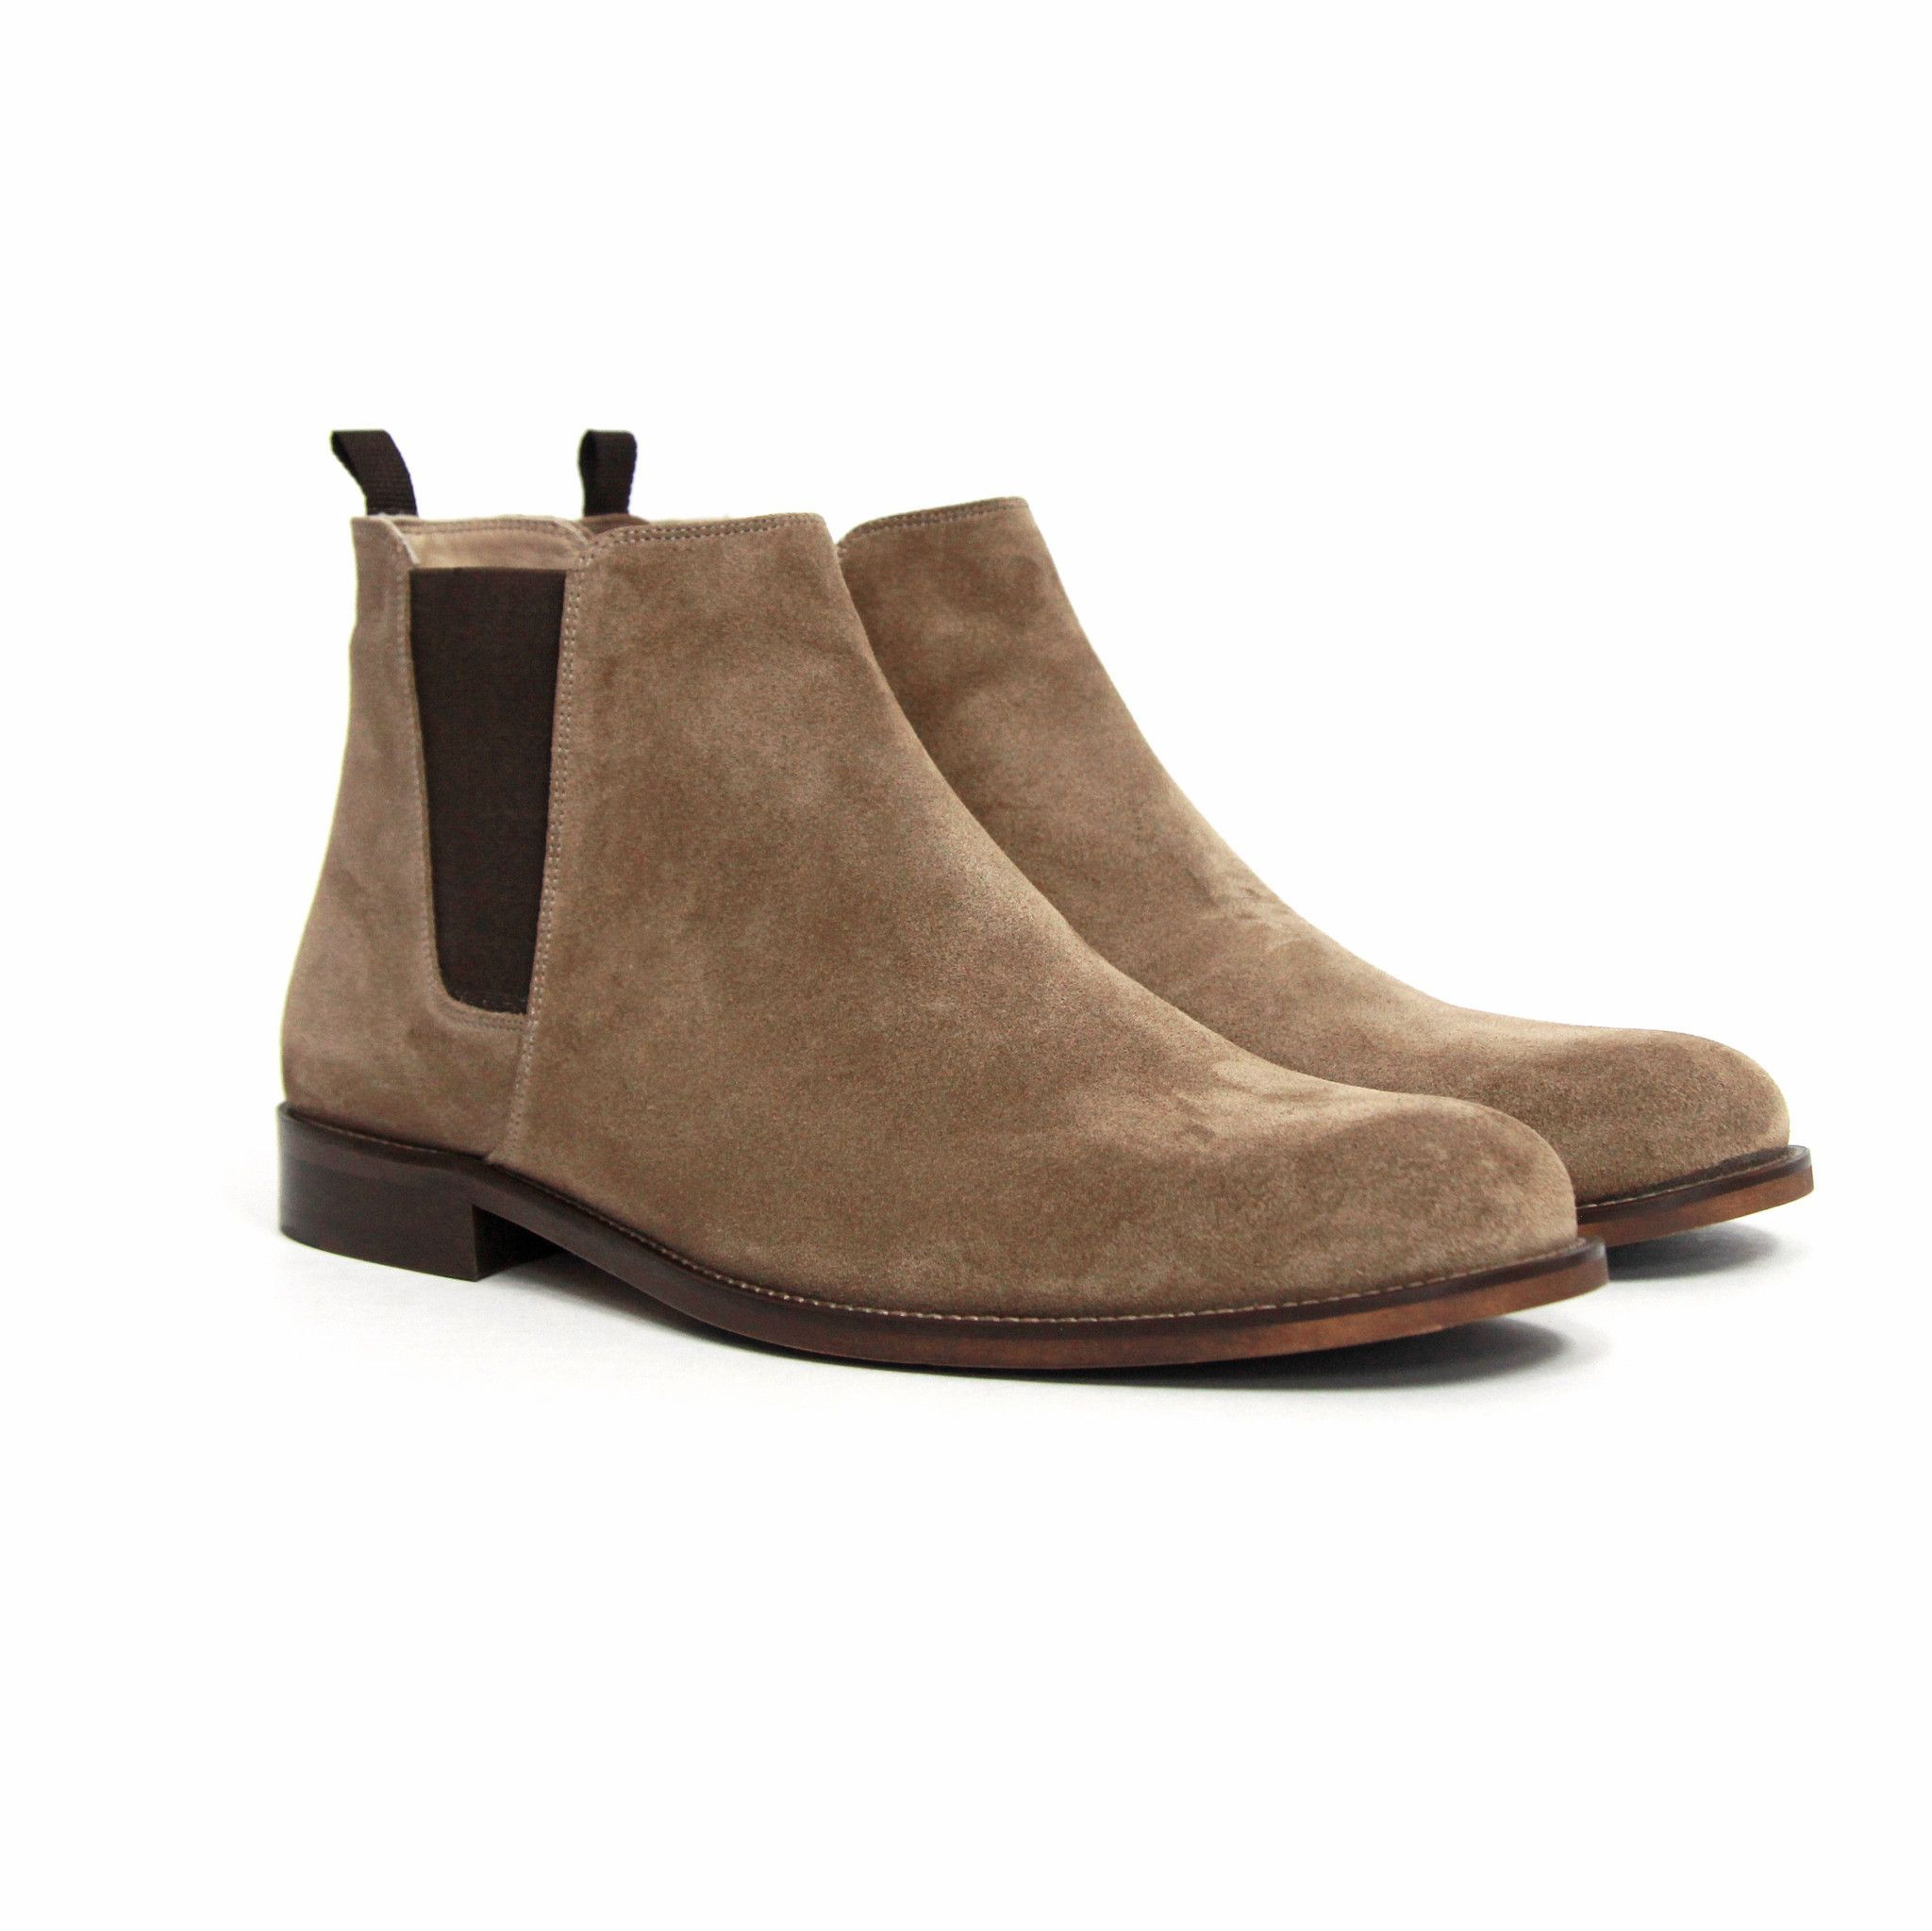 Explore Tan Suede Chelsea Boots and more!